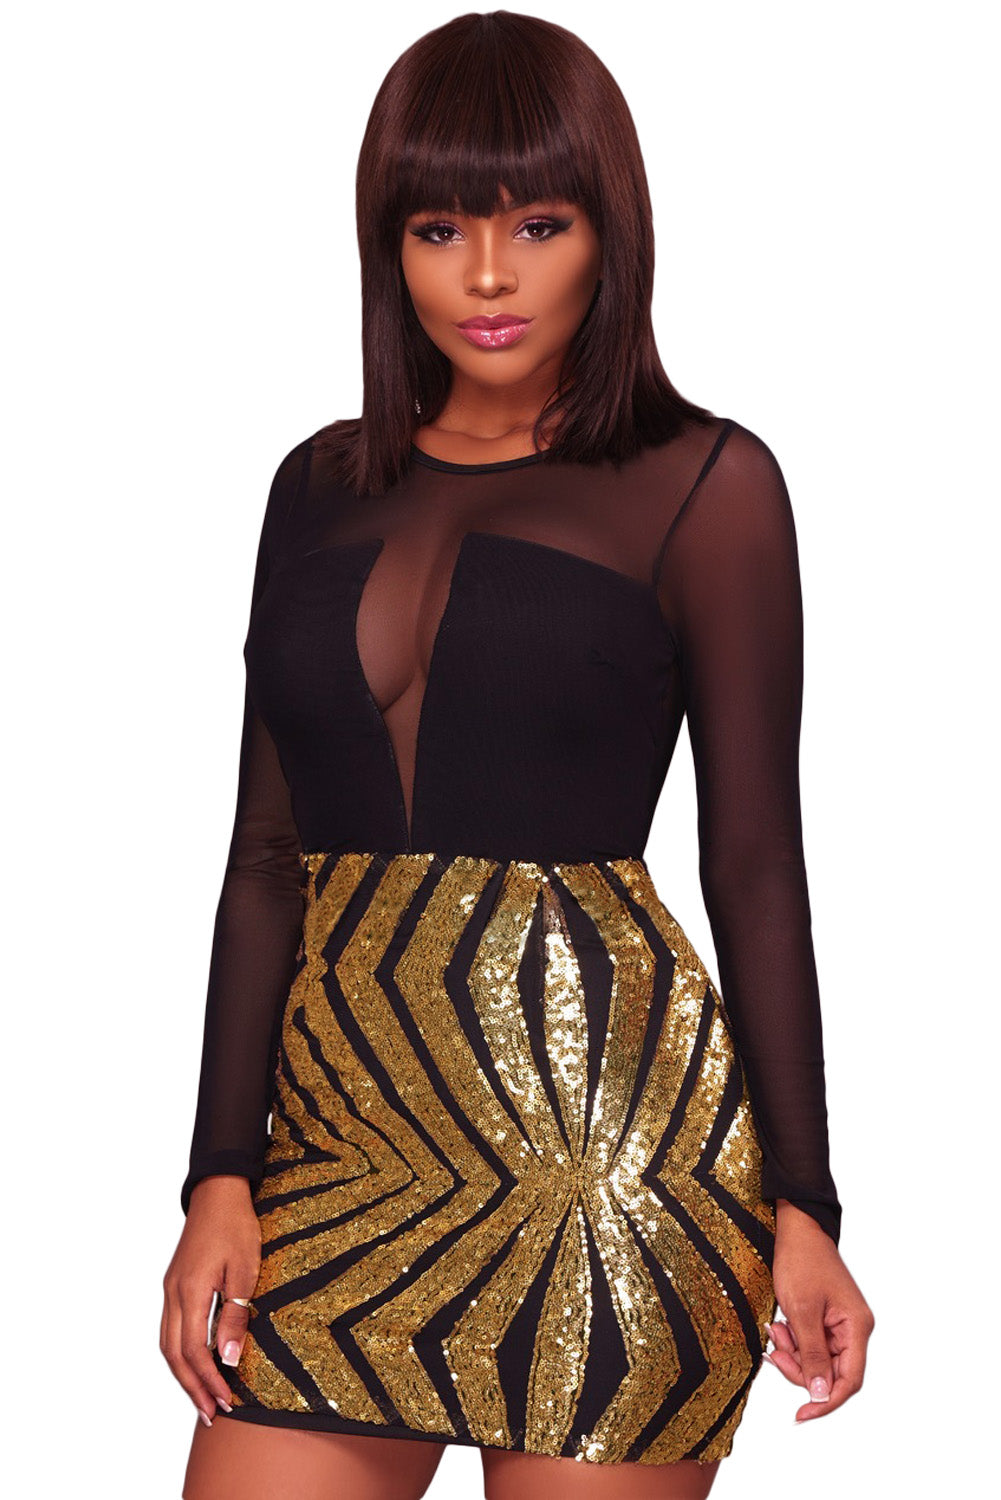 baaedffba46 Sexy Black Sheer Mesh Long Sleeve Gold Sequin Club Dress – SEXY AFFORDABLE  CLOTHING